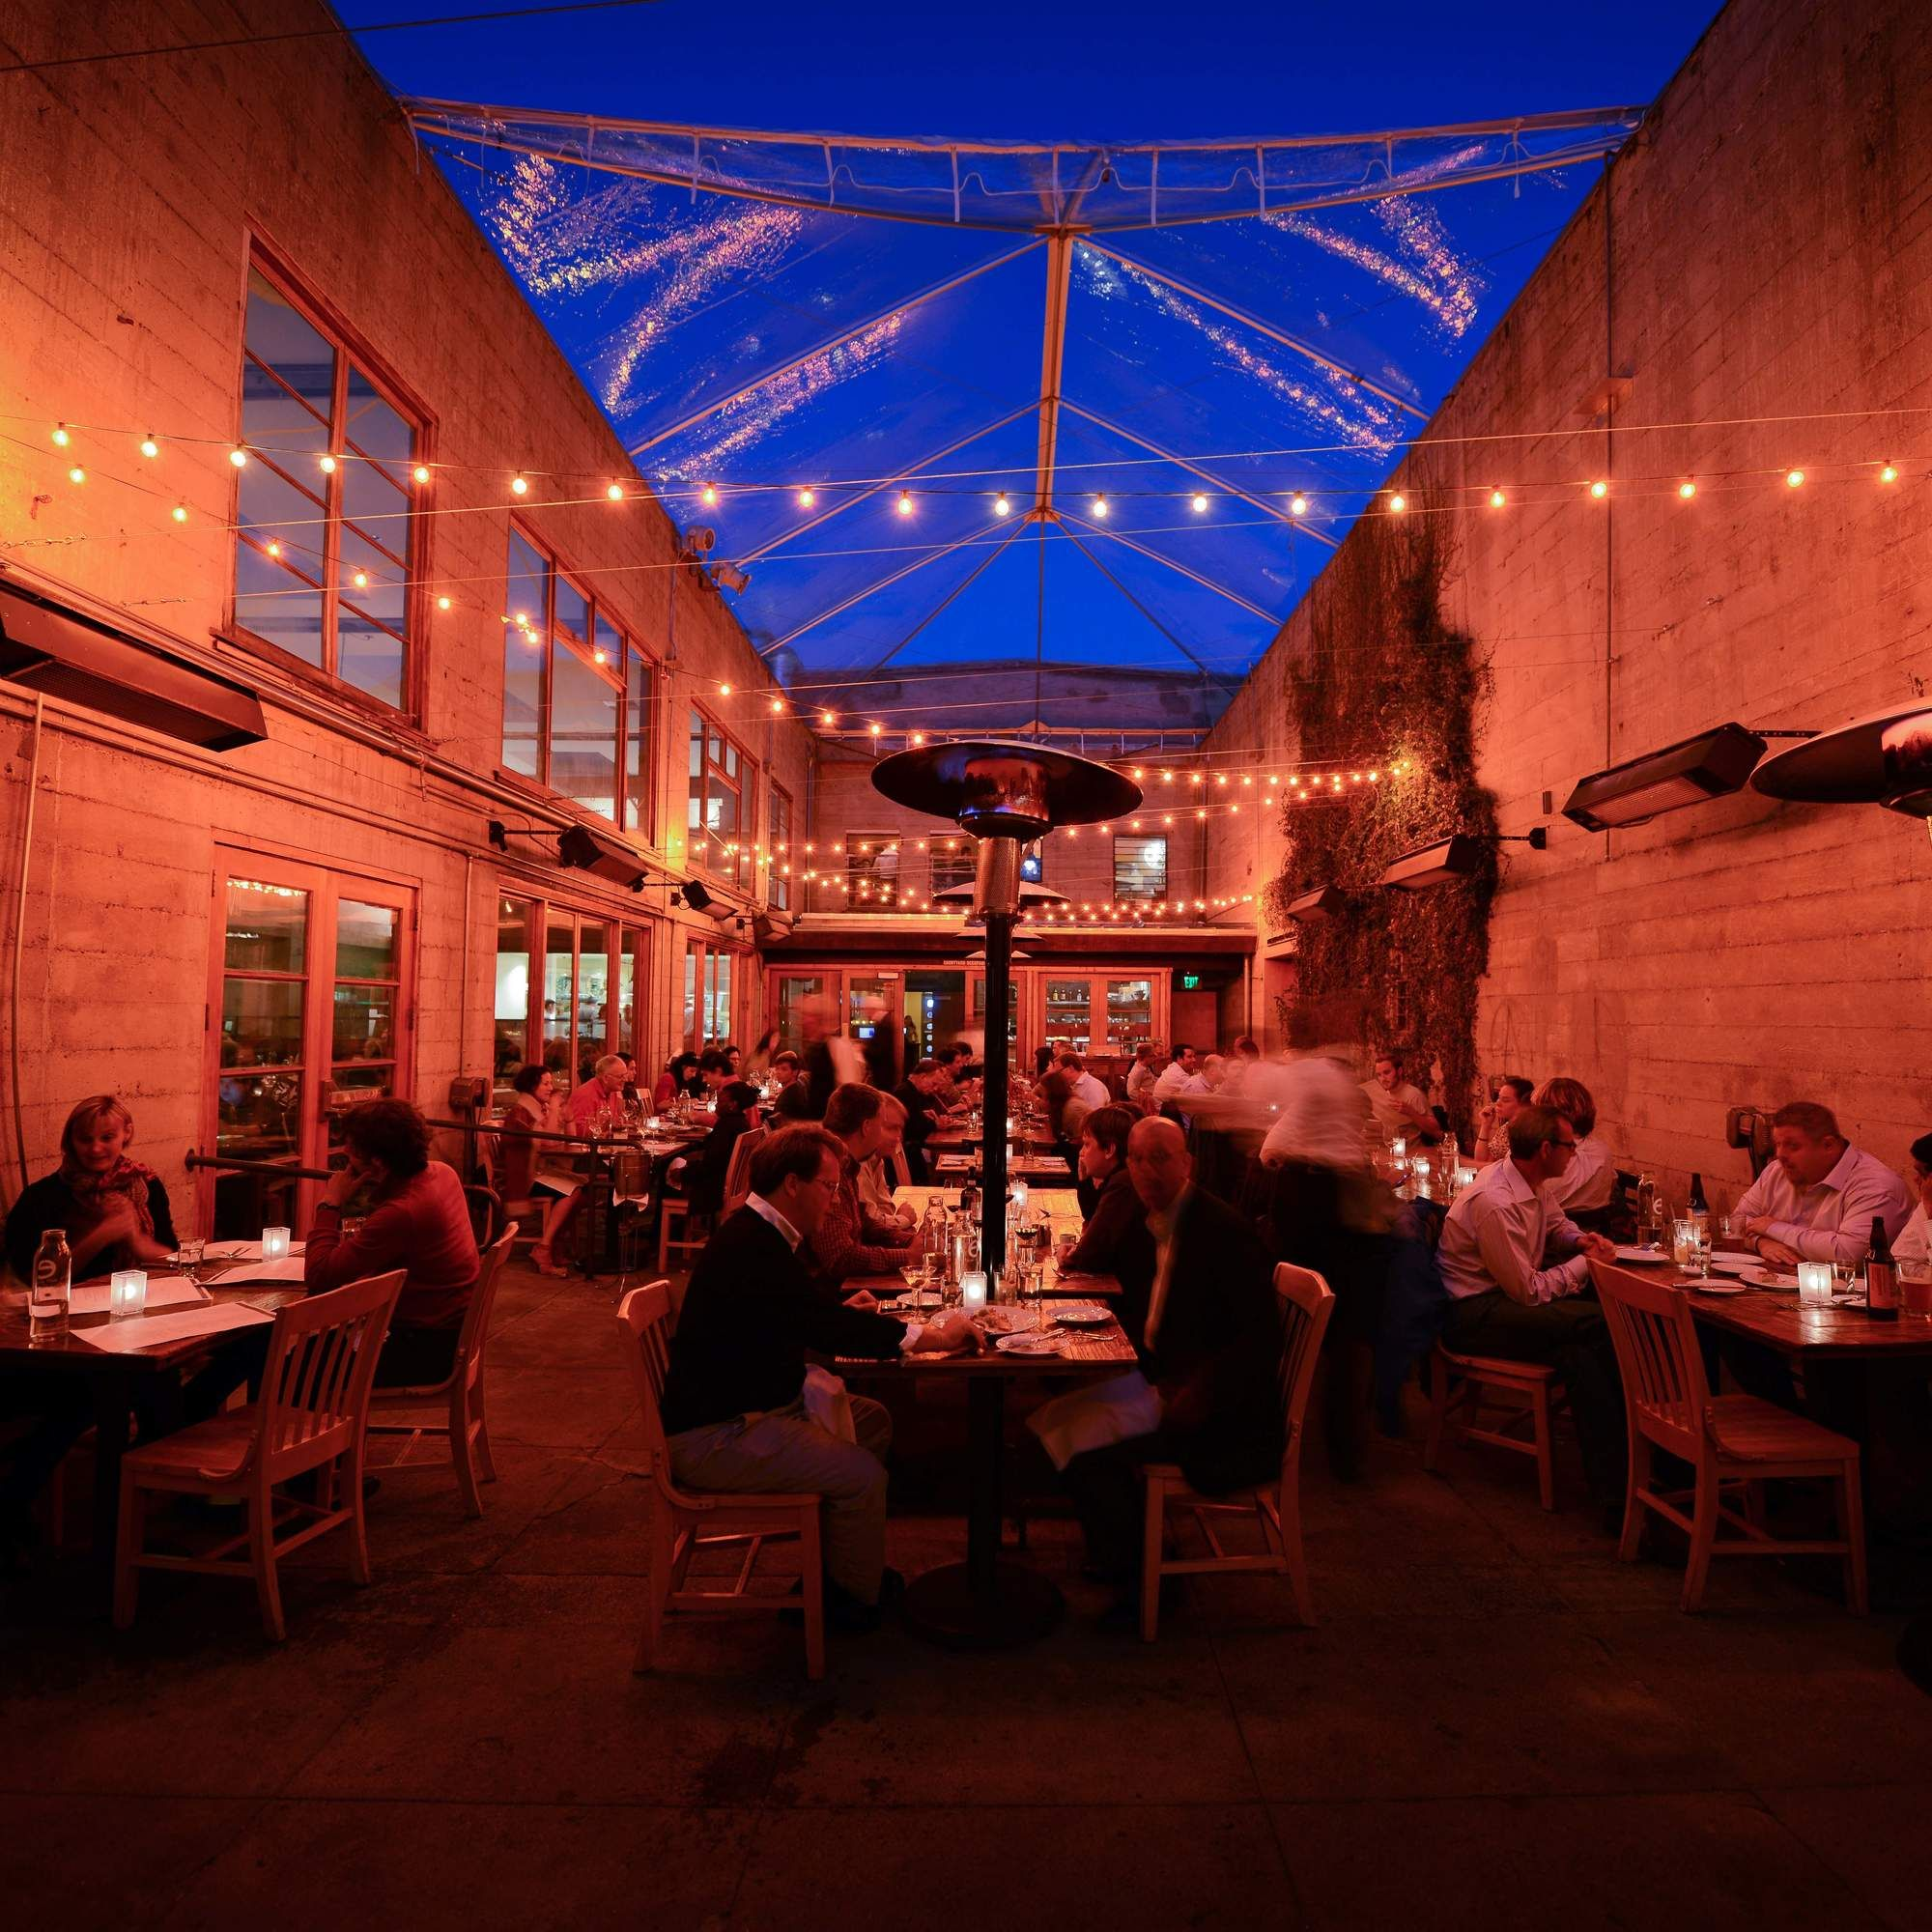 Everything You Need To Know About Outdoor Dining In Sf San Francisco Dinner San Francisco Restaurants San Francisco Travel